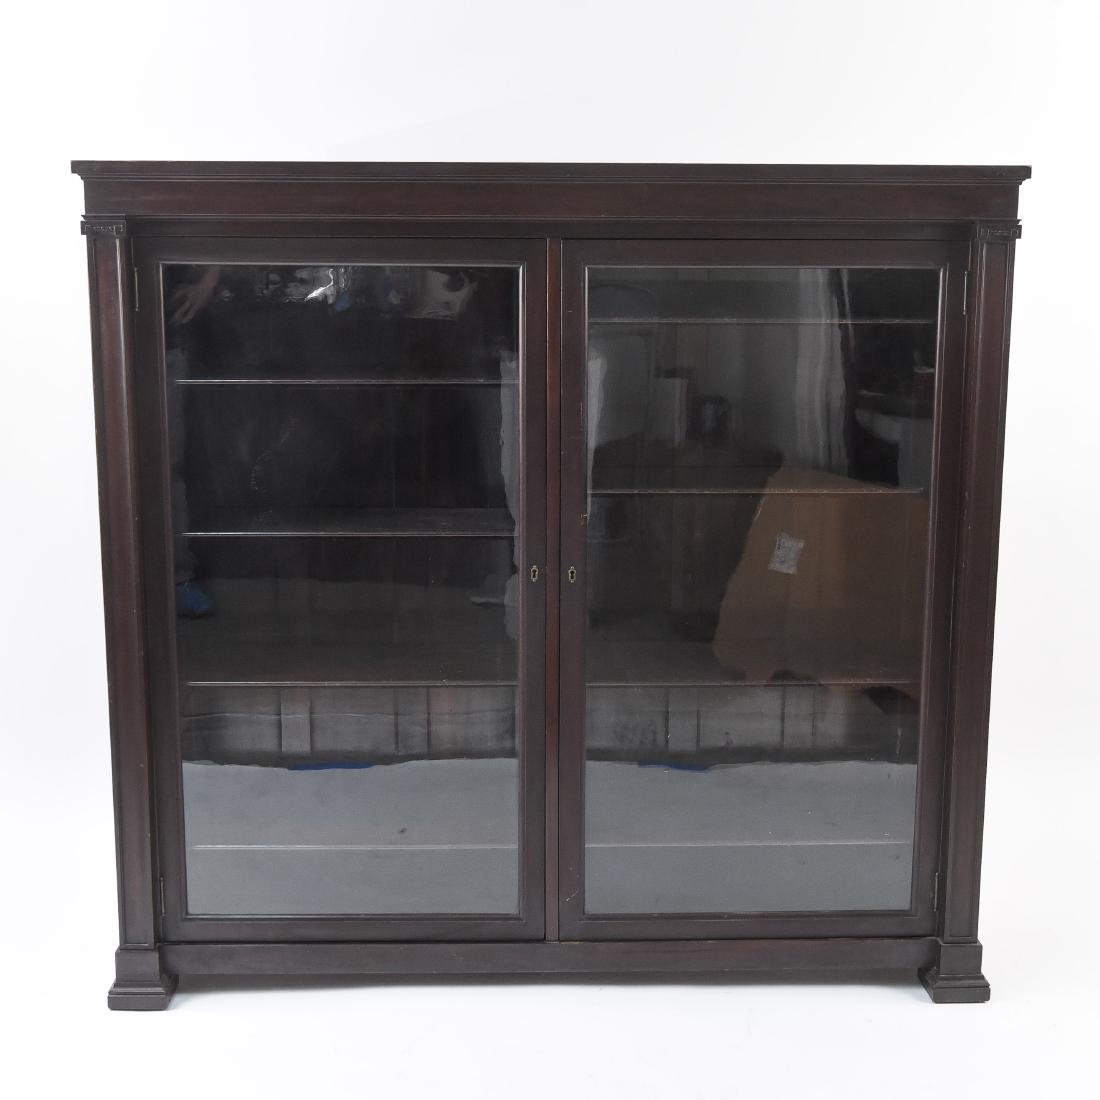 C. 1900 GLASS FRONT BOOKCASE DISPLAY CABINET